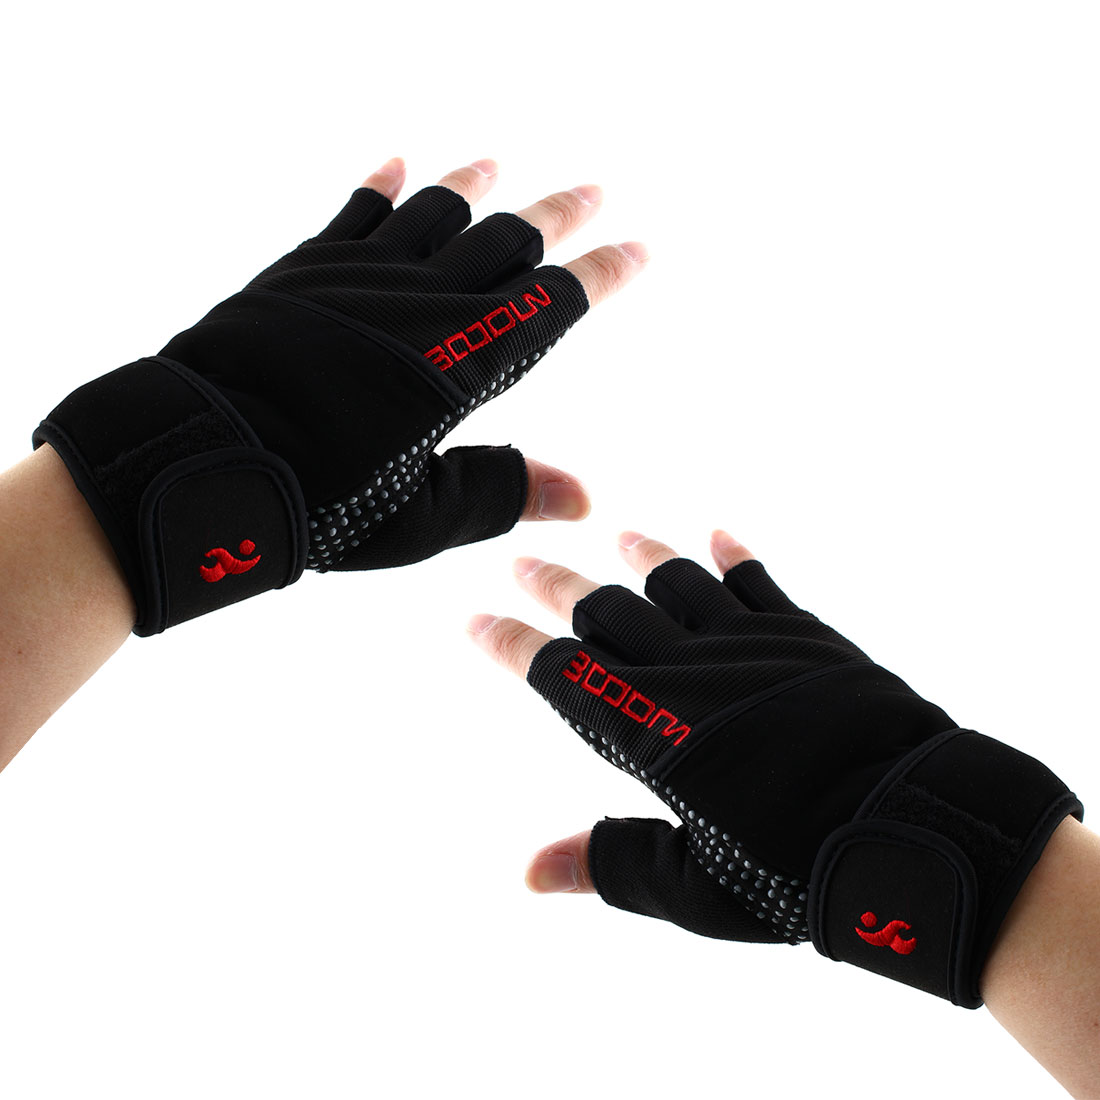 Boodun Authorized Sports Weight Lifting Training Gym Workout Fitness Embroidery Adjustable Anti Slip Half Finger Gloves Red Size XL Pair